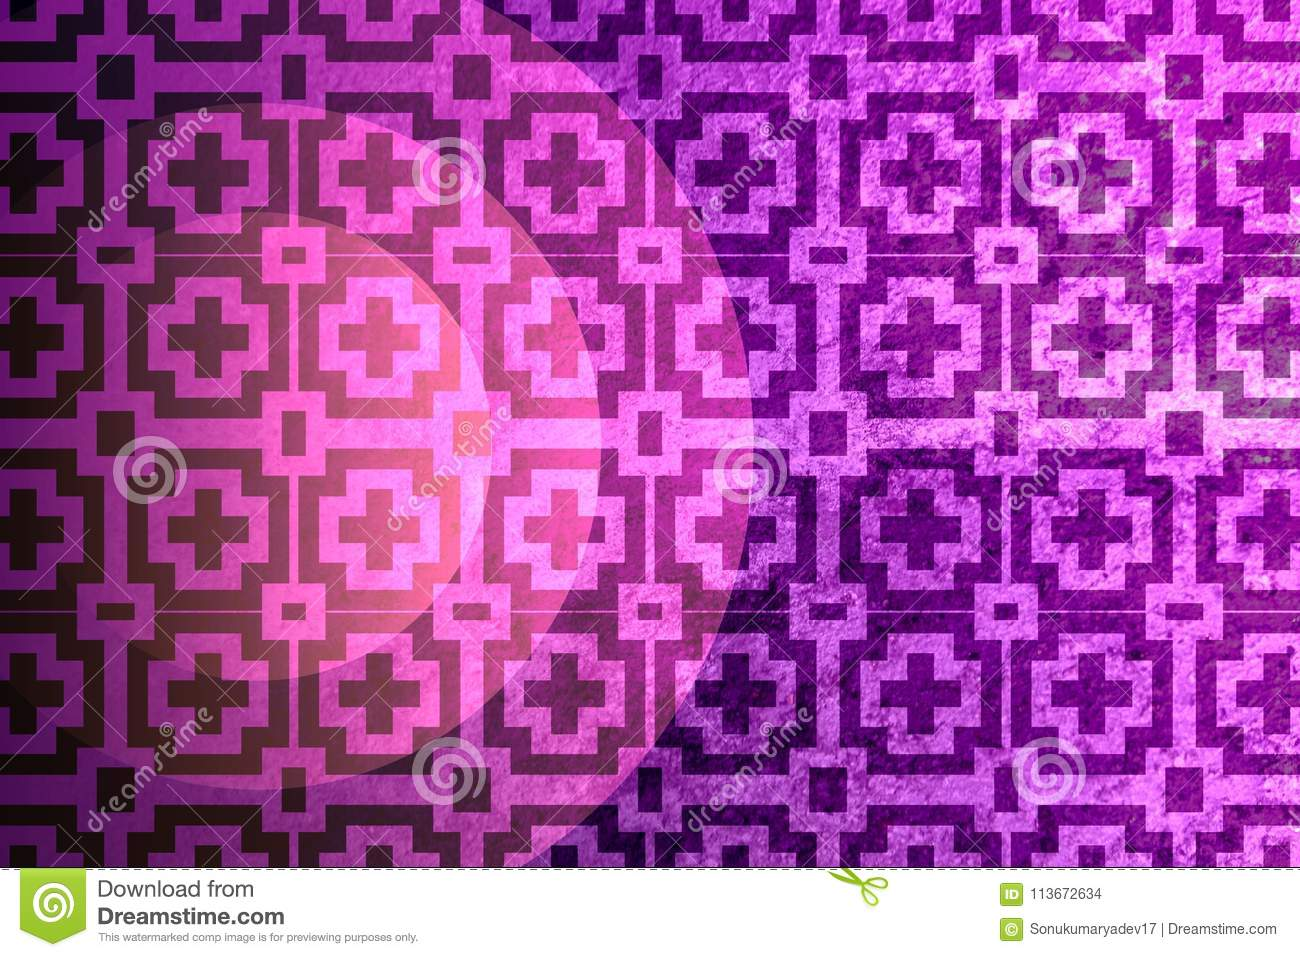 Geometric pattern and textures Abstract background